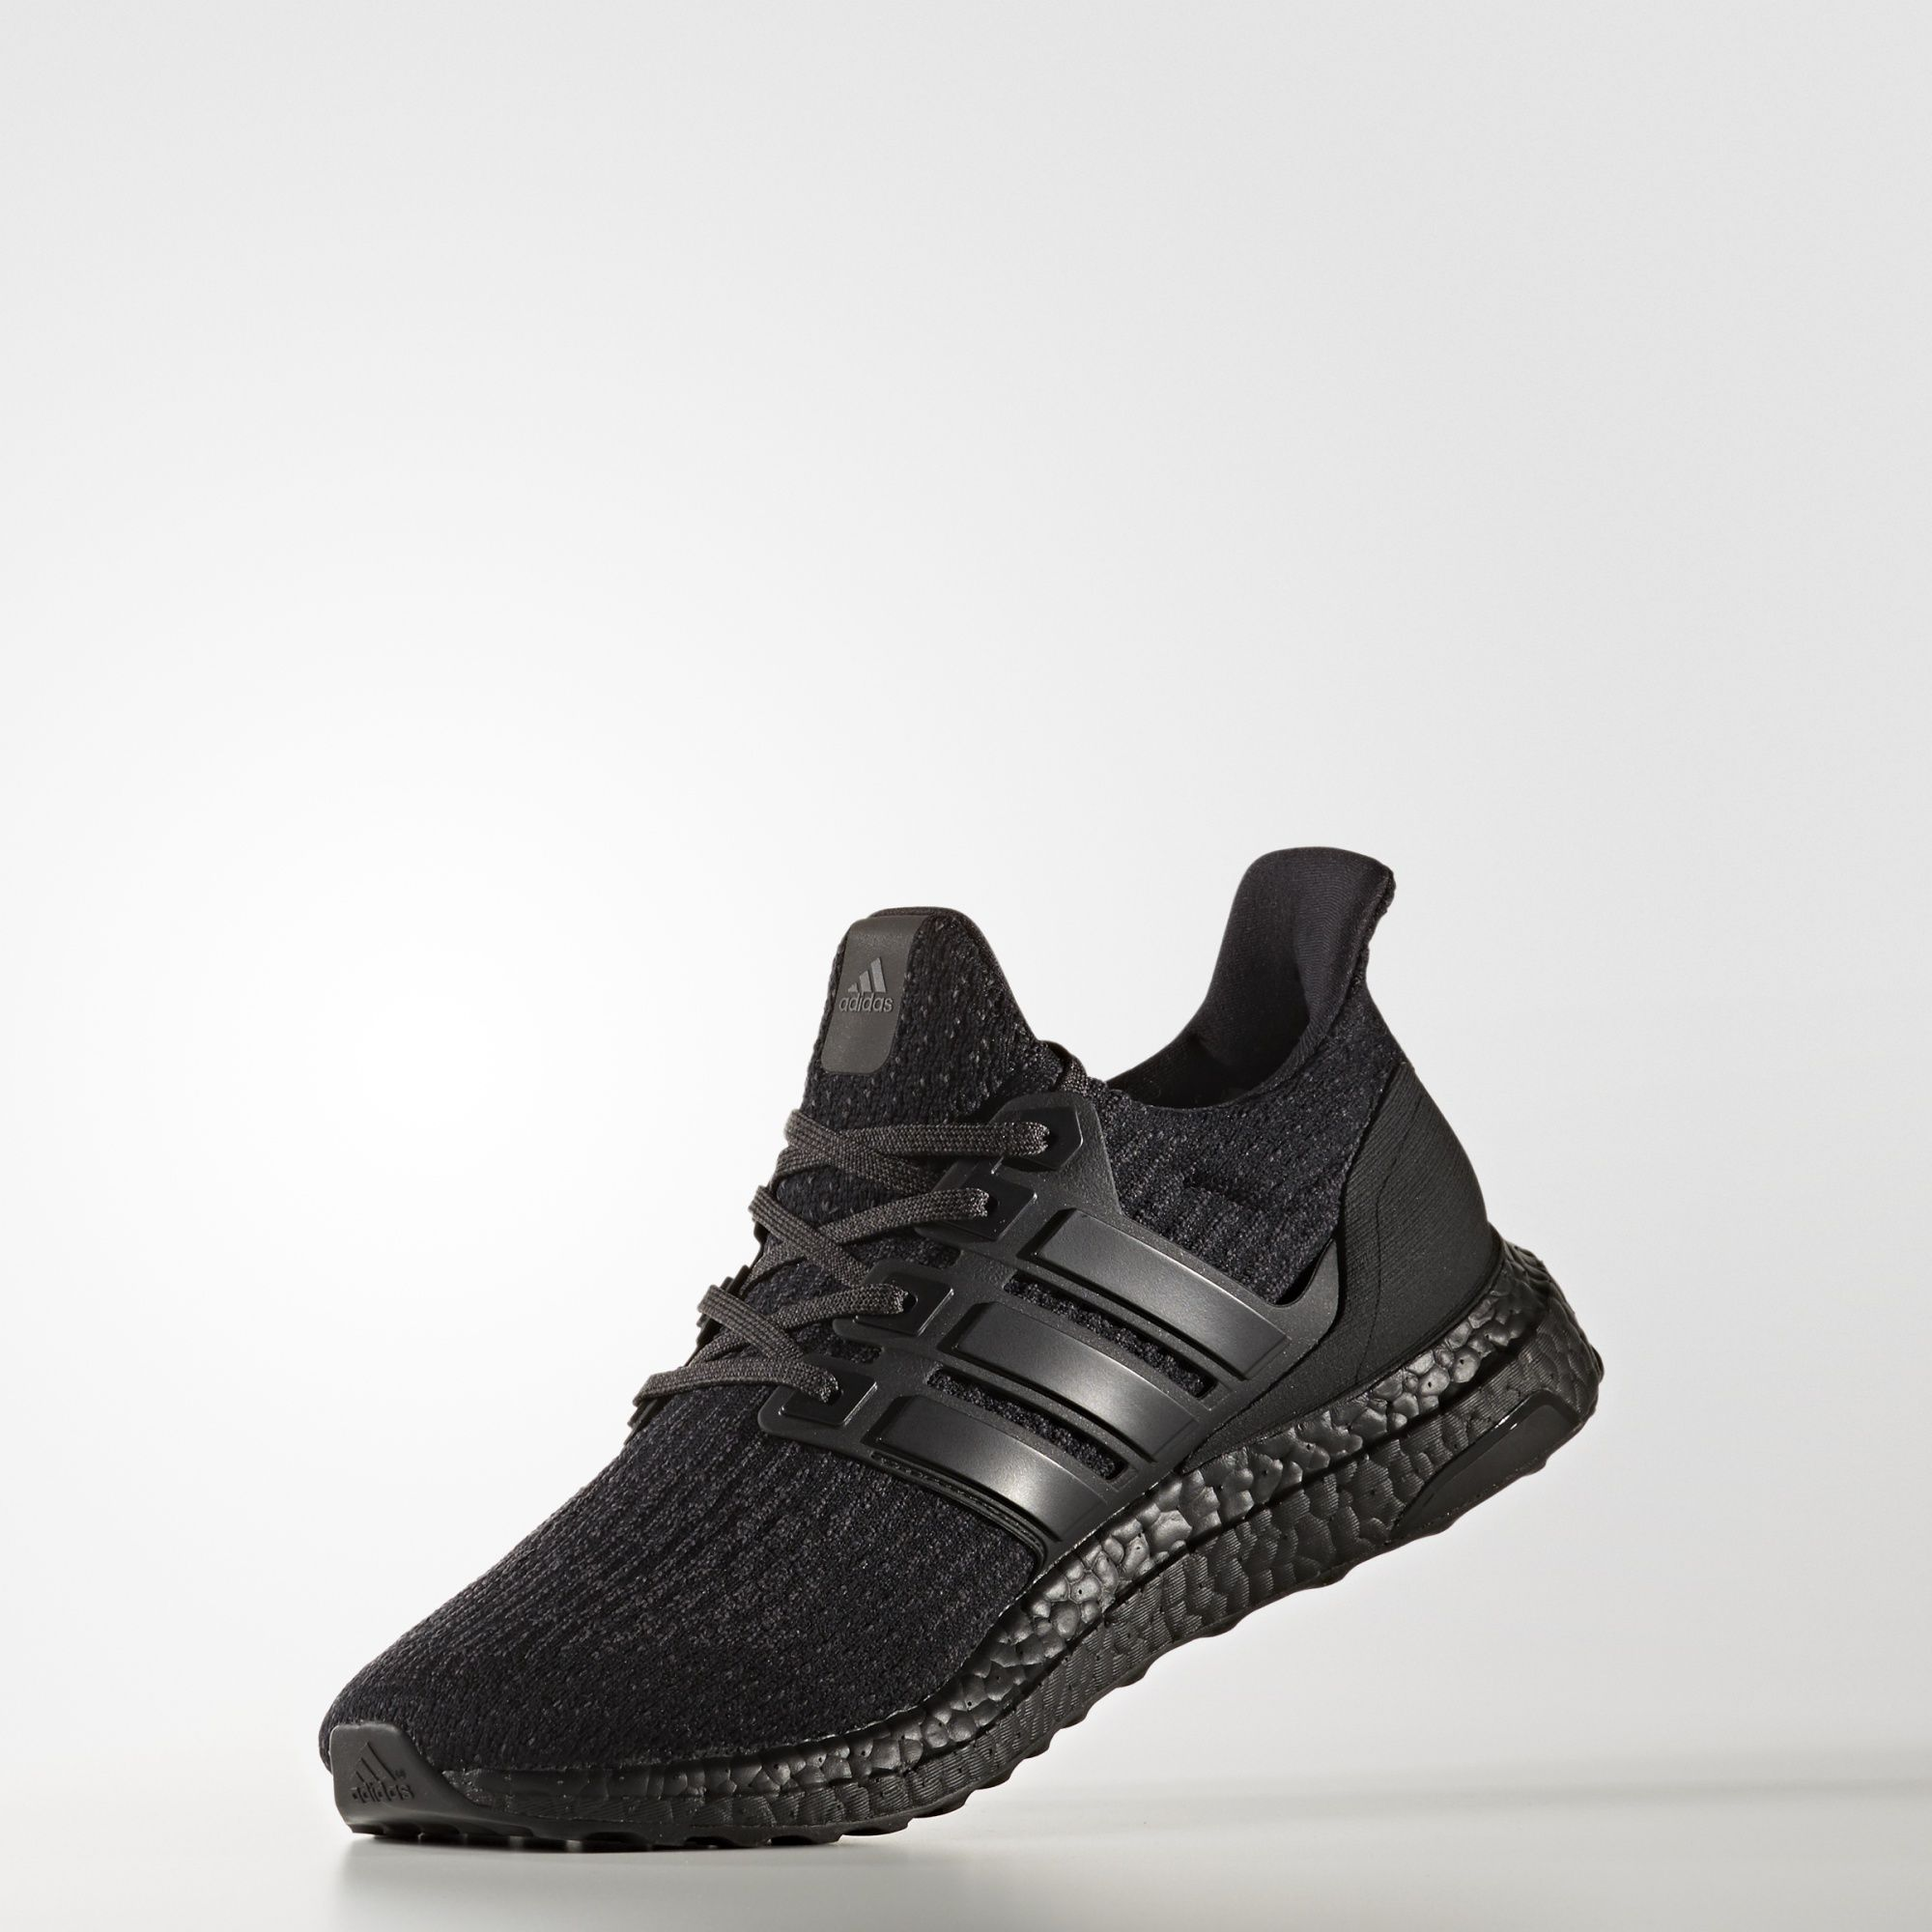 adidas Ultra Boost 3.0 Triple Black CG3038 2